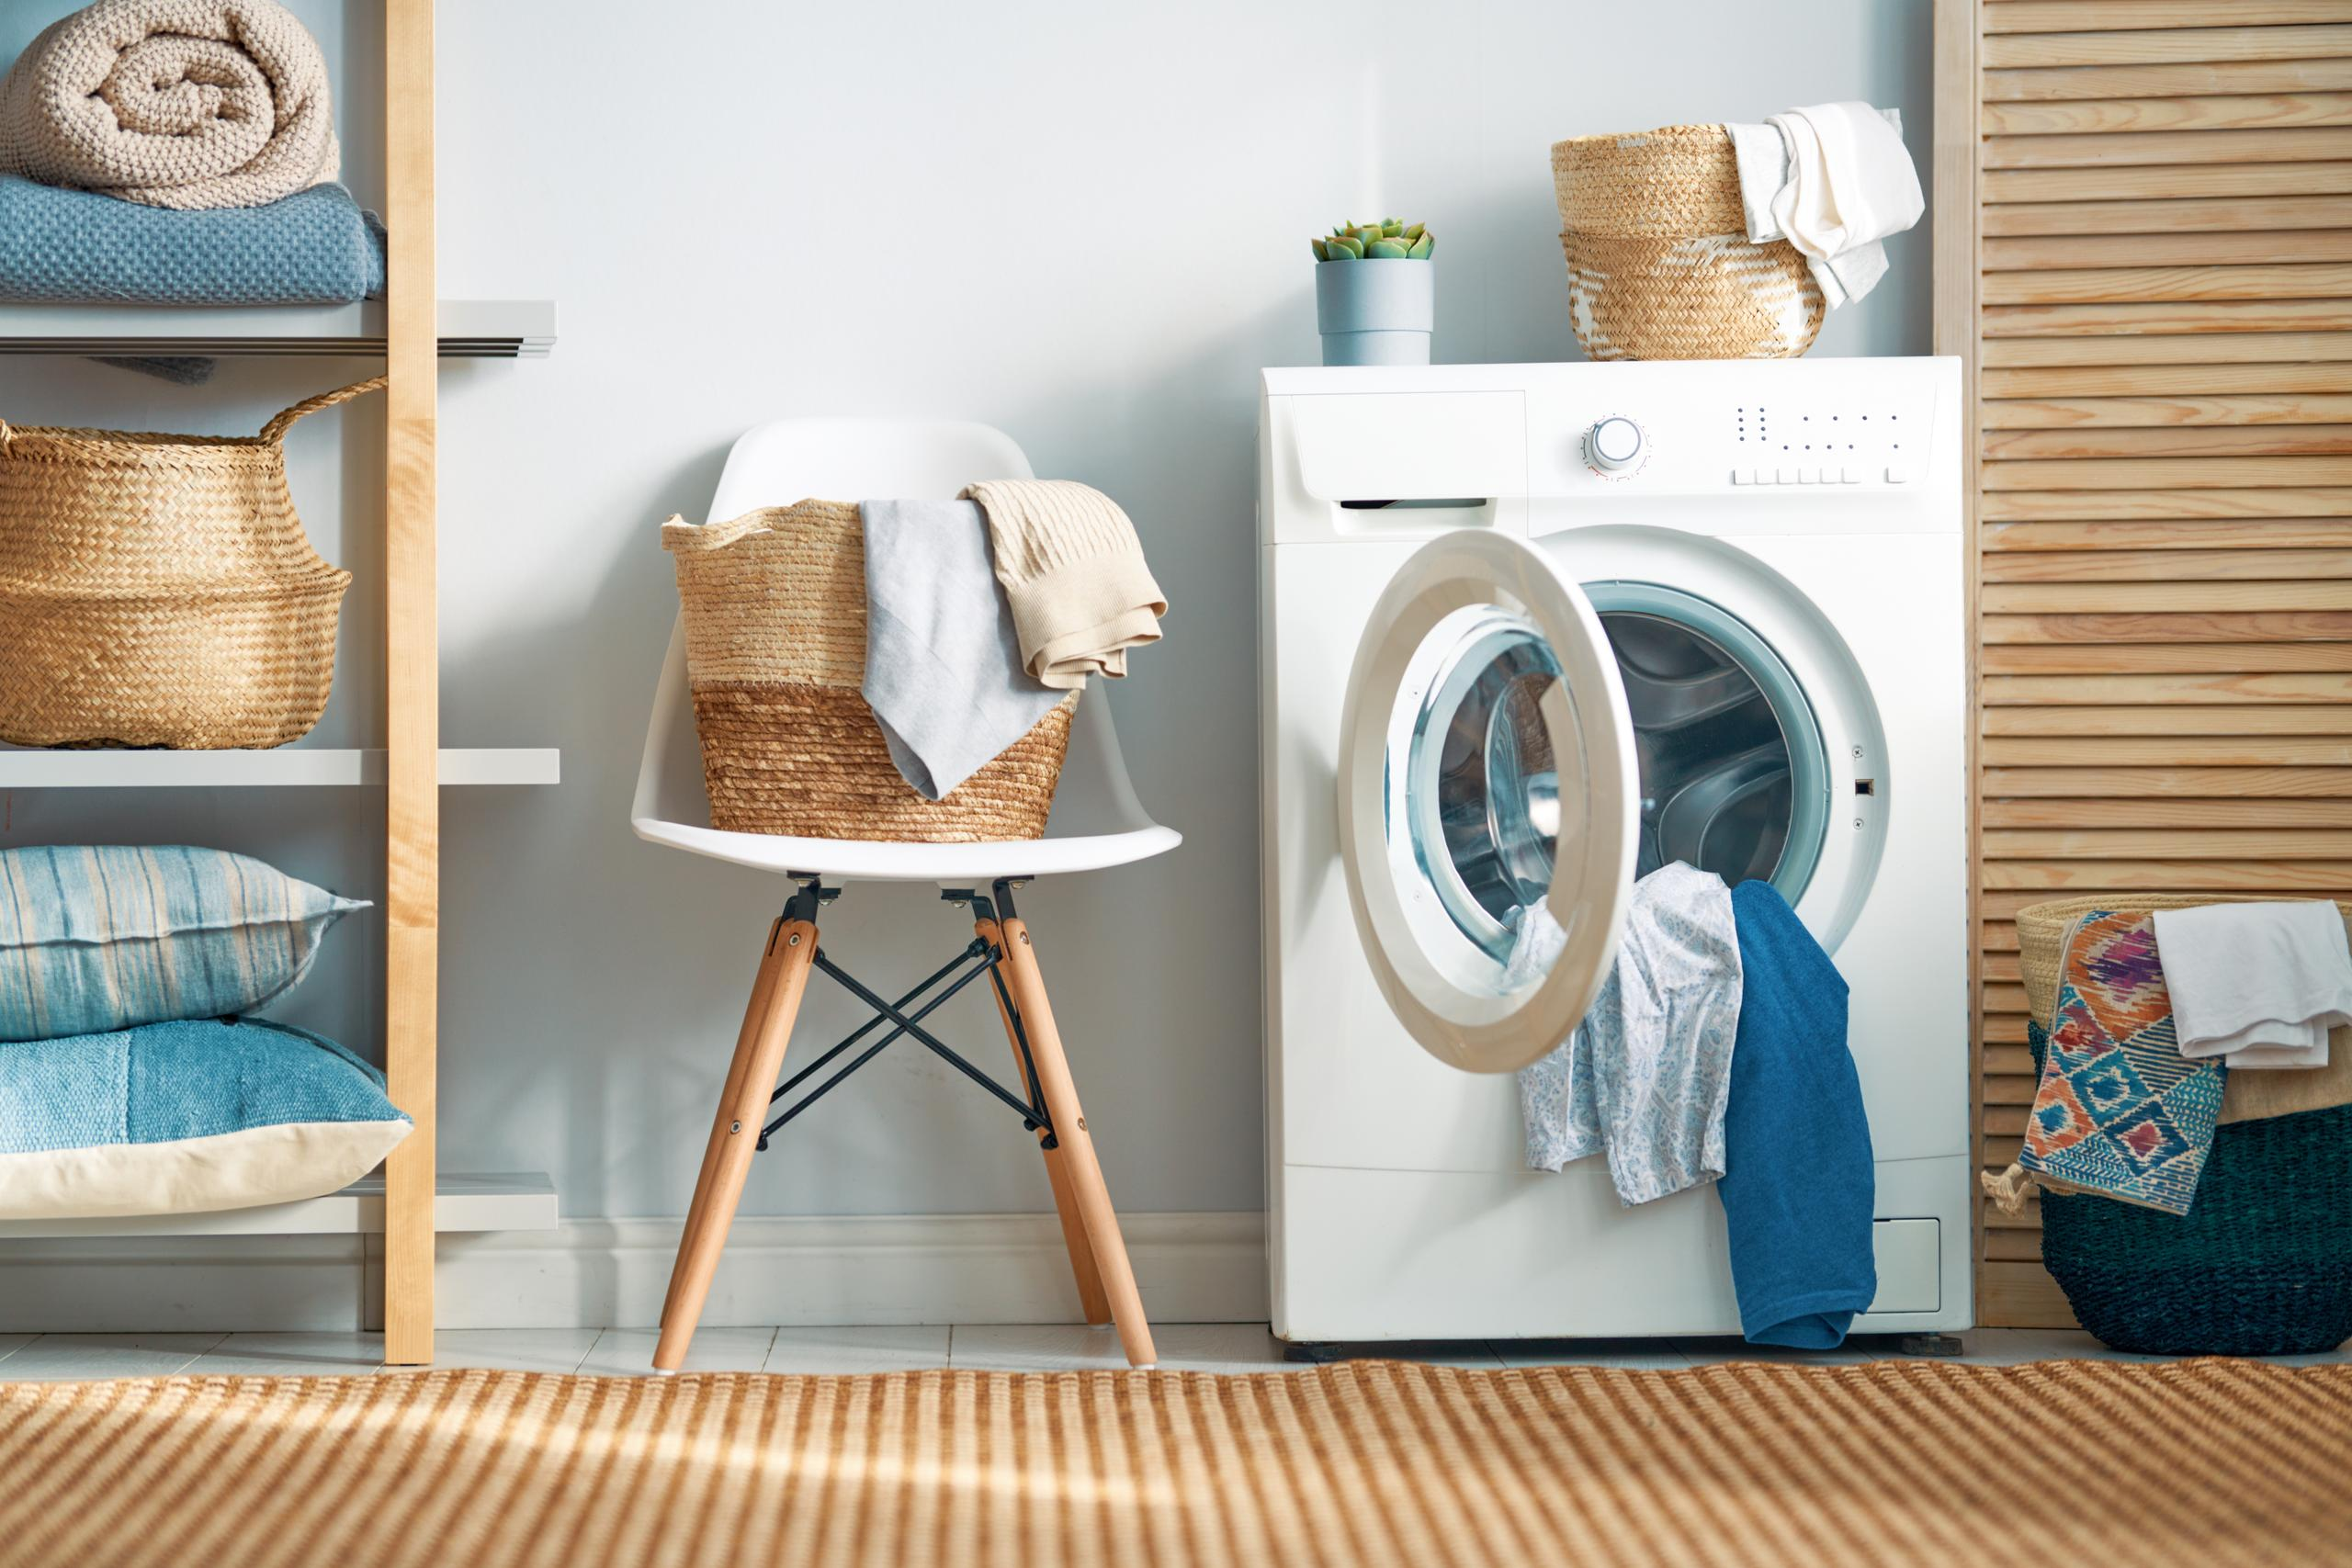 A Laundry Room With Items That Need To Be Packed And Shipped